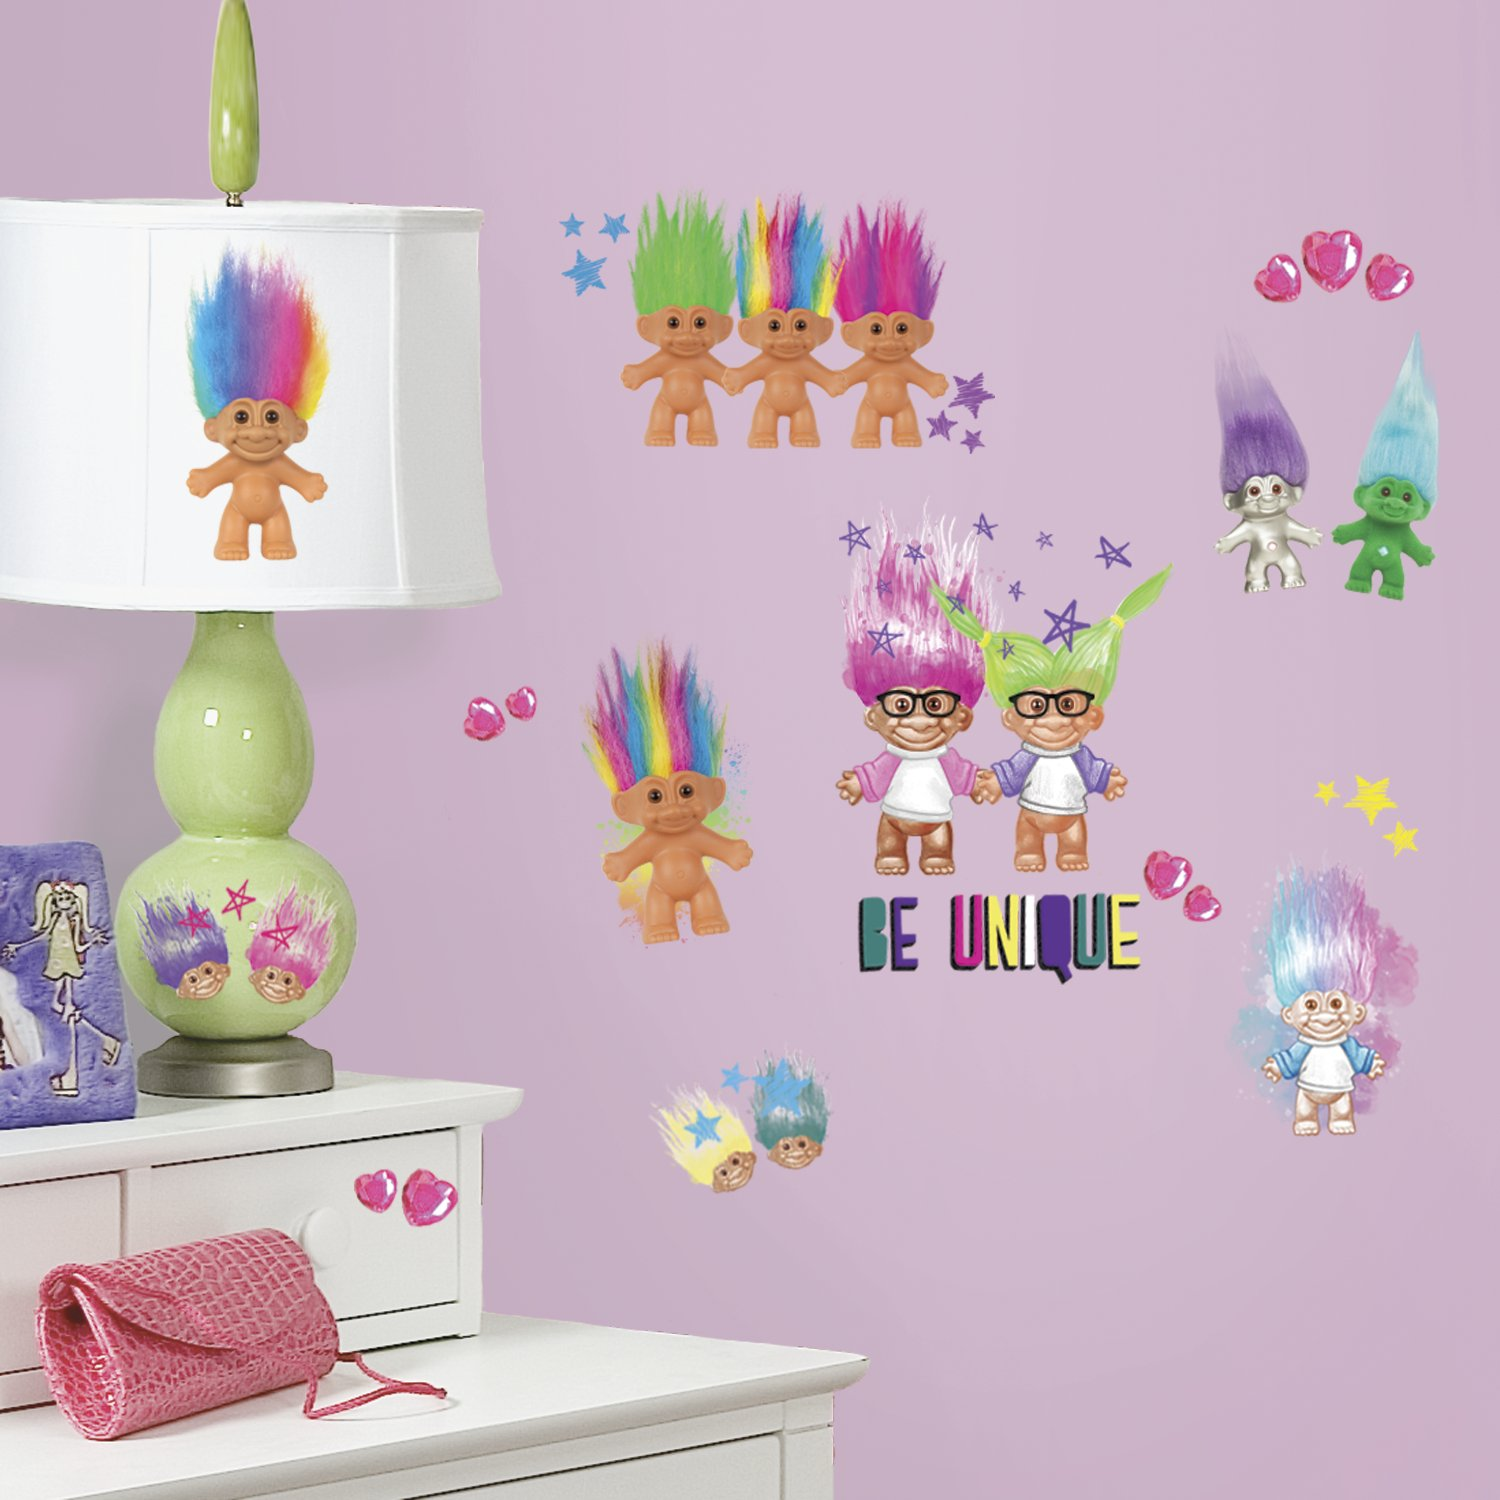 Roommates rmk3062scs good luck trolls peel and stick wall decals roommates rmk3062scs good luck trolls peel and stick wall decals amazon amipublicfo Image collections